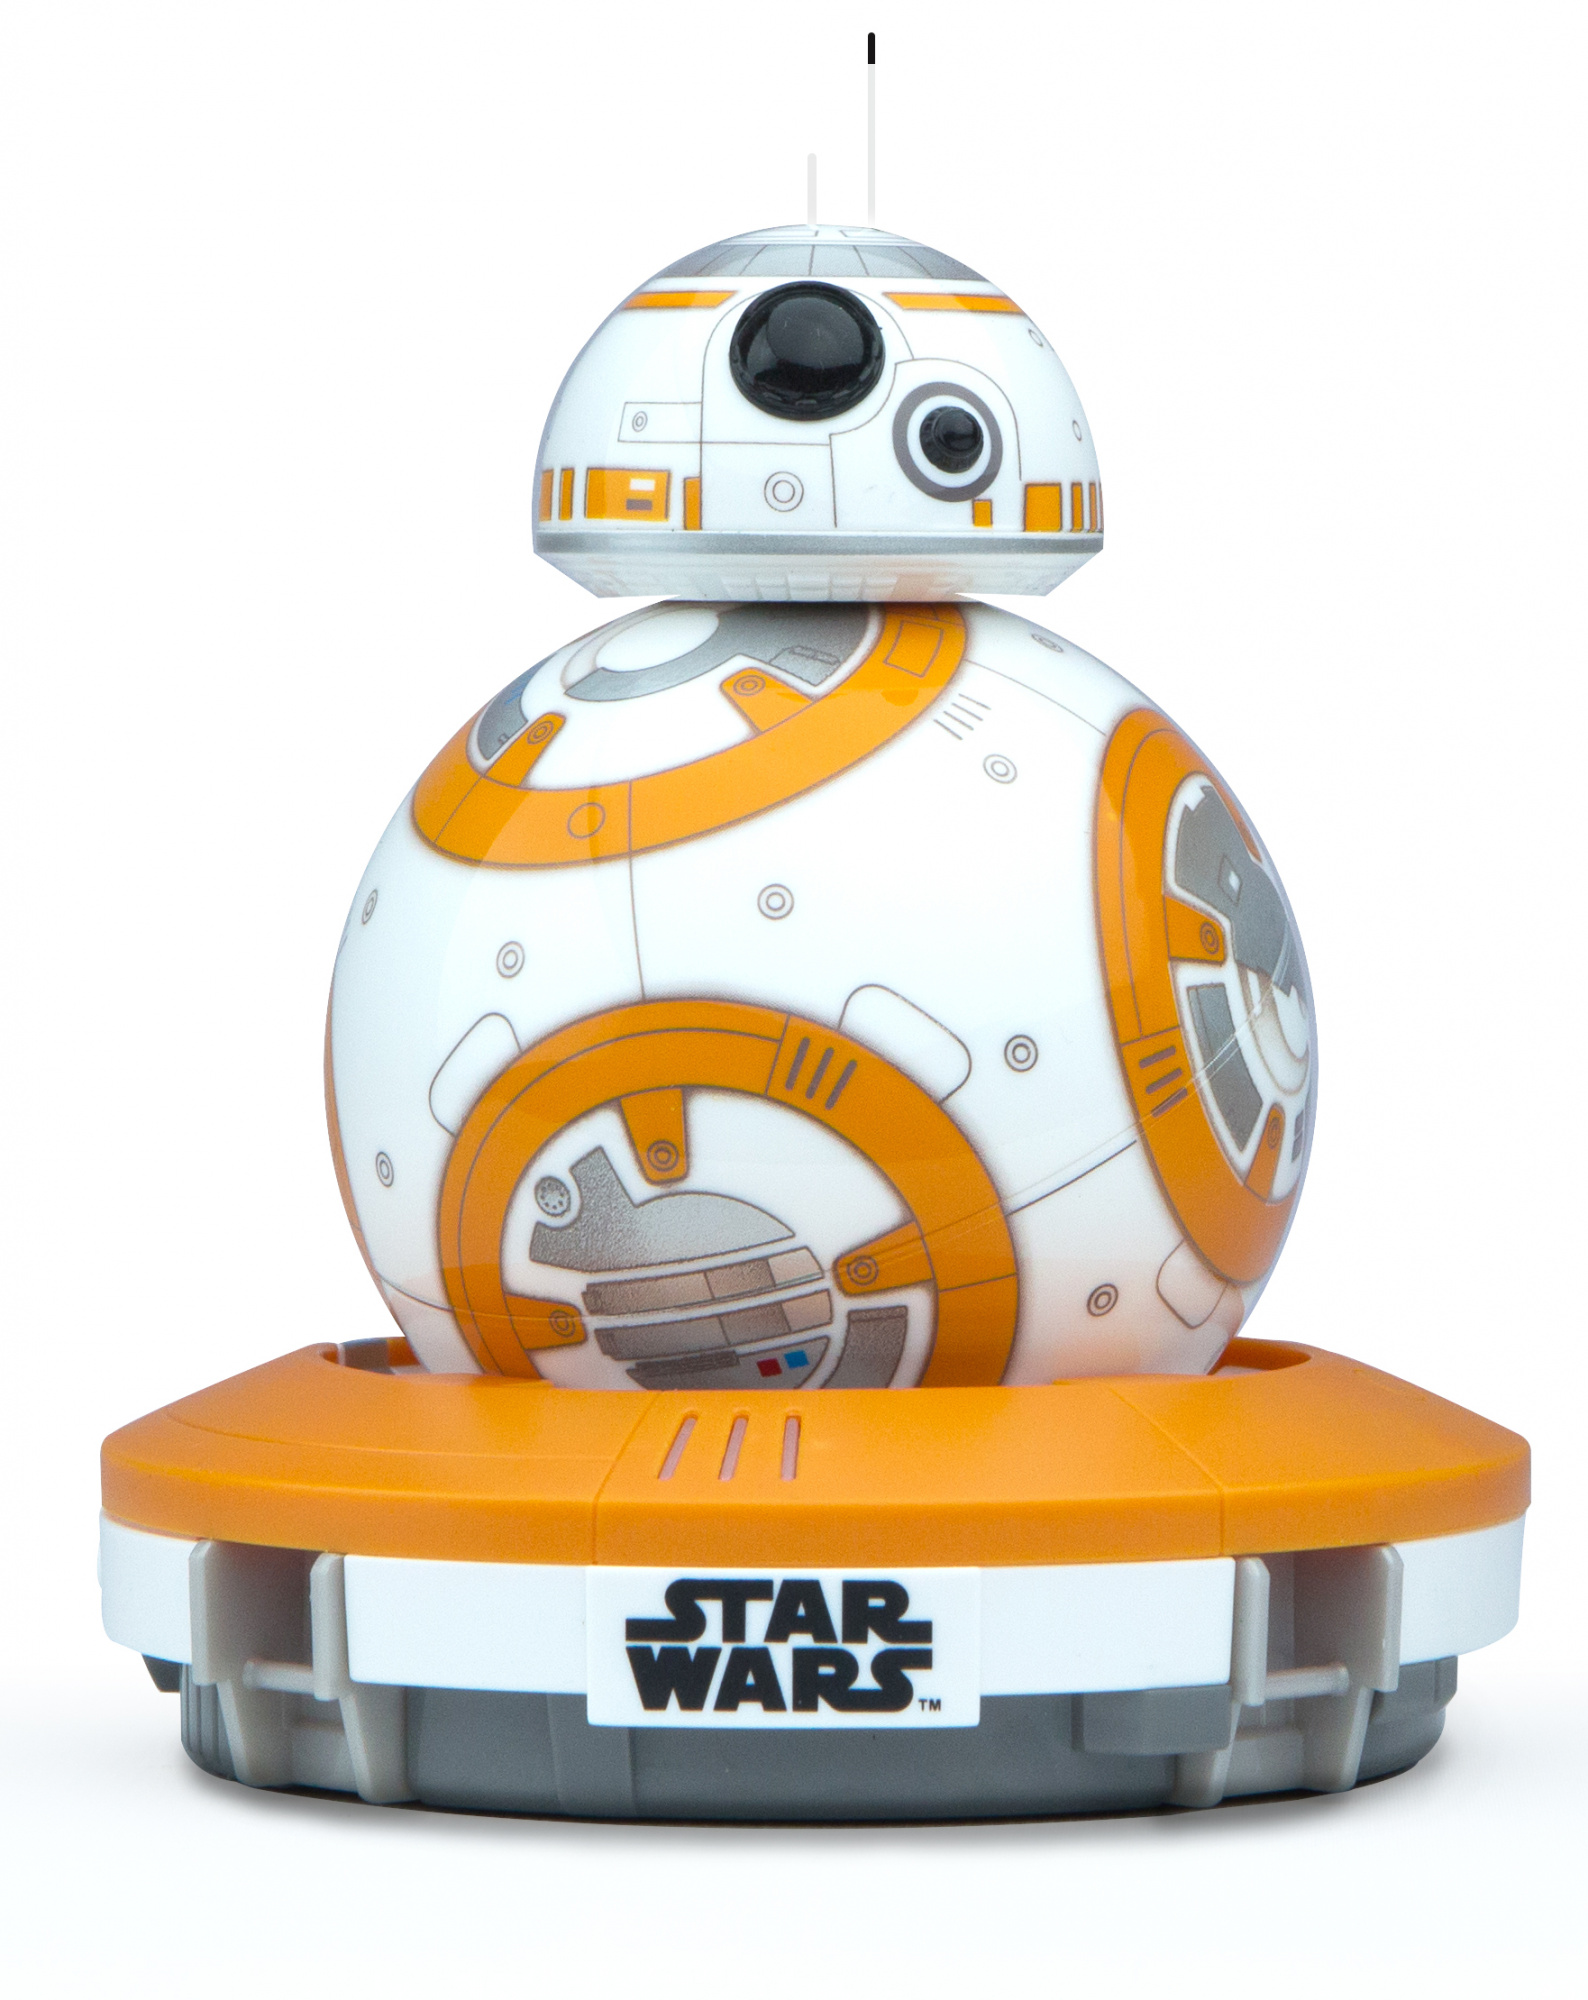 StarWars Droid робот sphero bb 8 special edition браслет force band